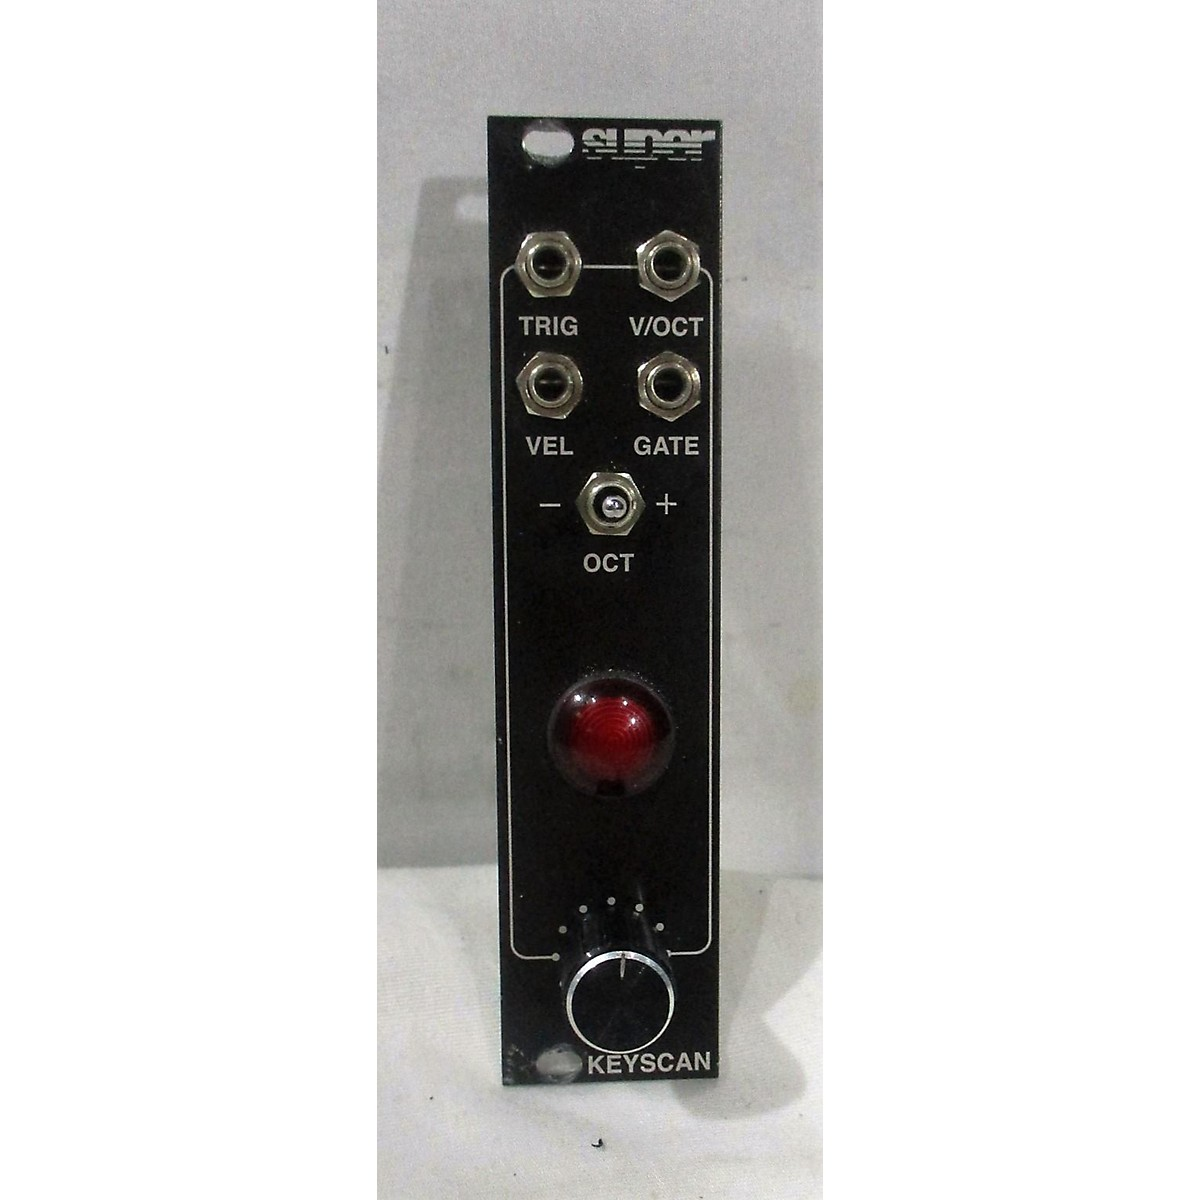 In Store Used Used Super Synthesis Keyscan Synthesizer